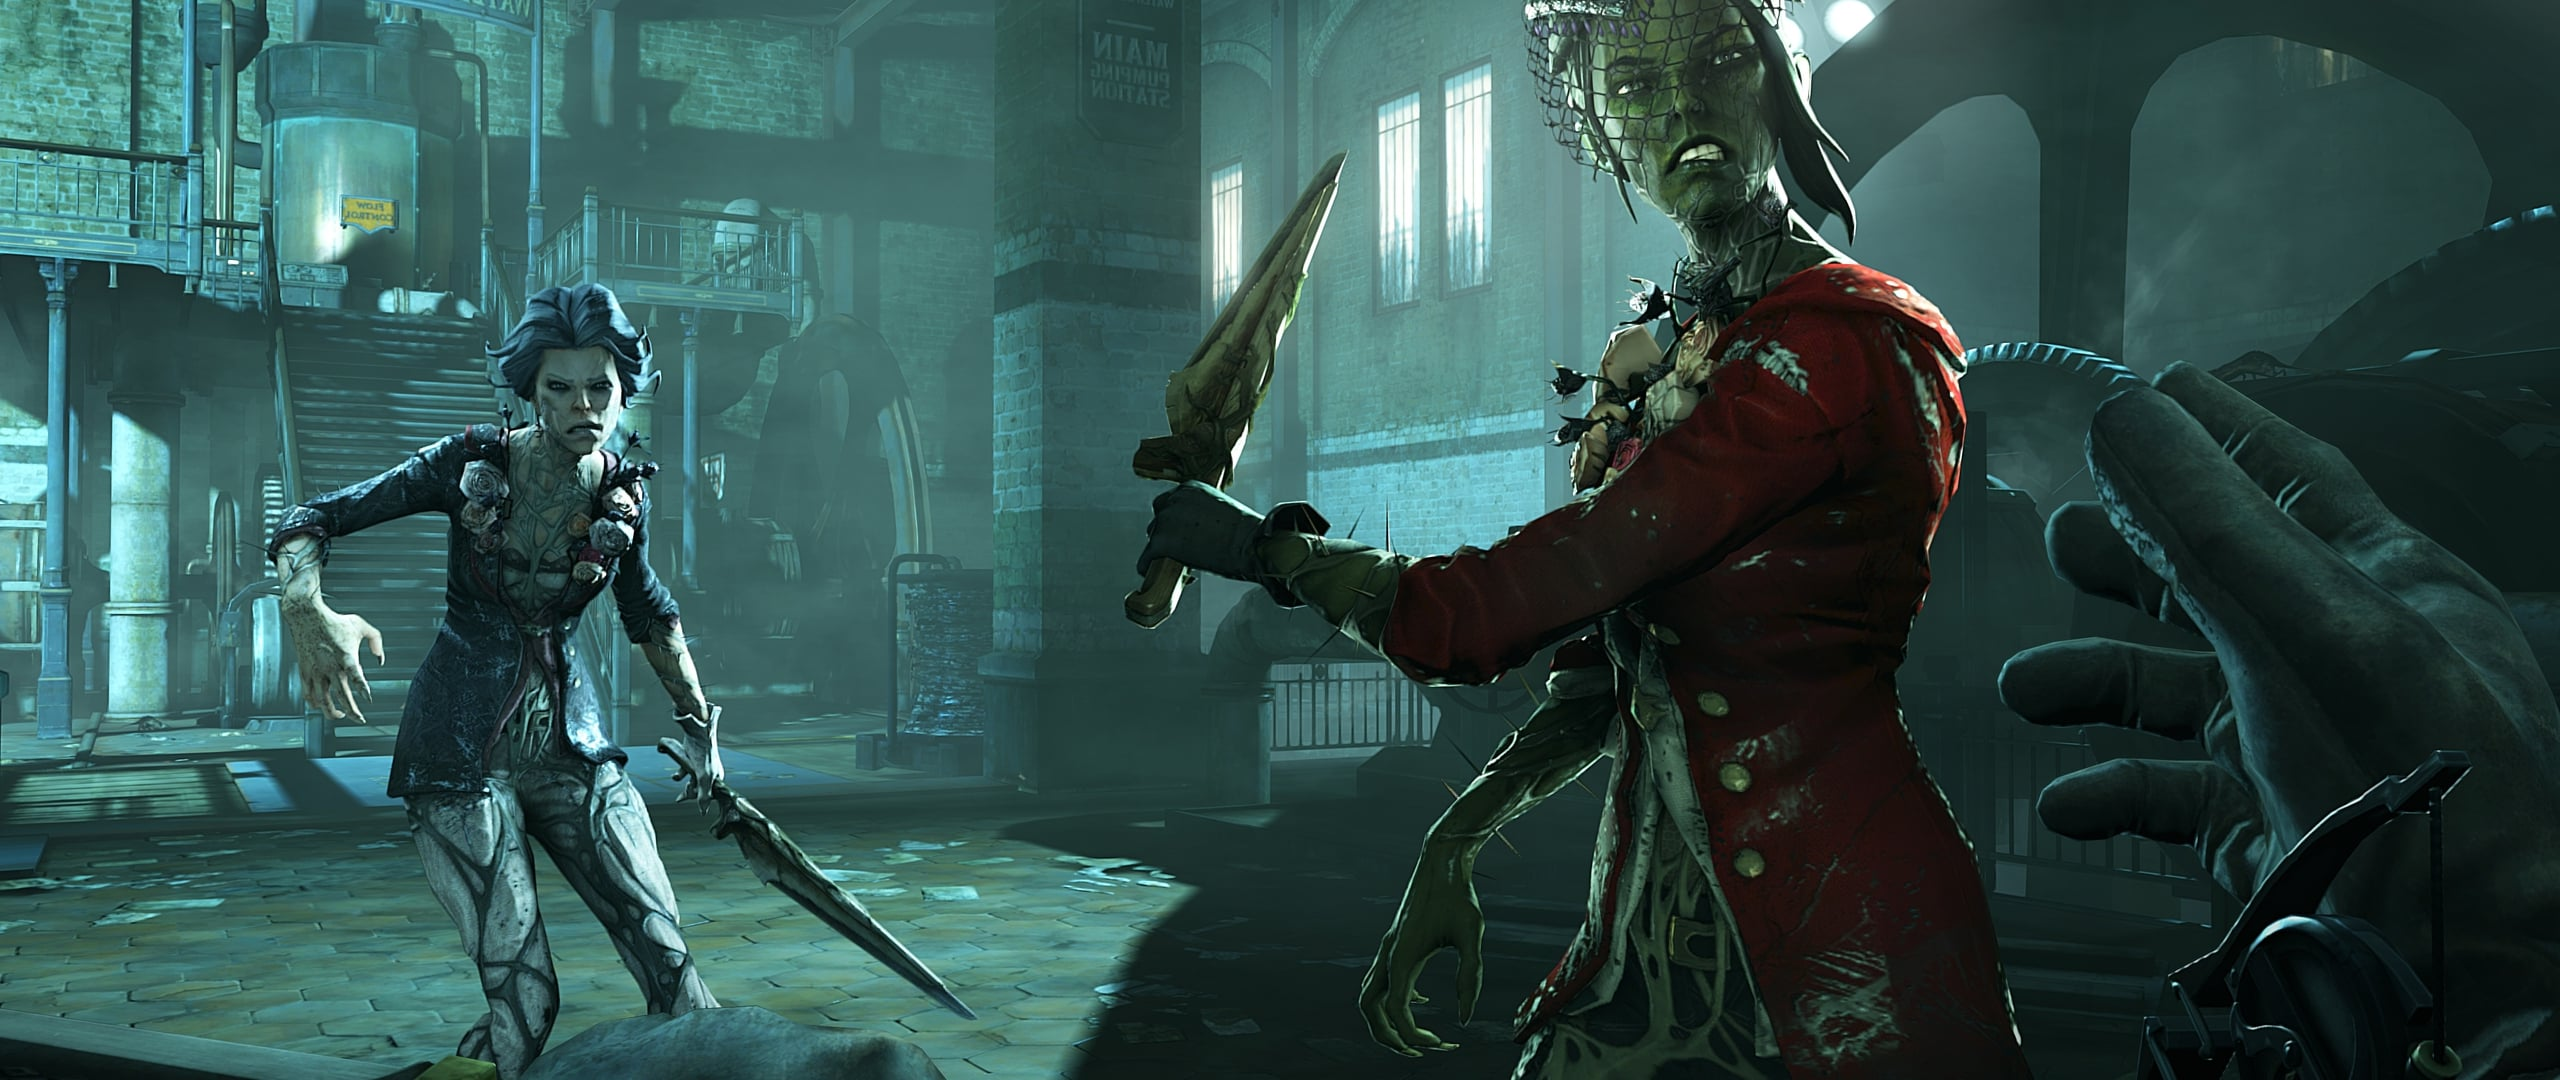 Dishonored 2 HD wallpapers